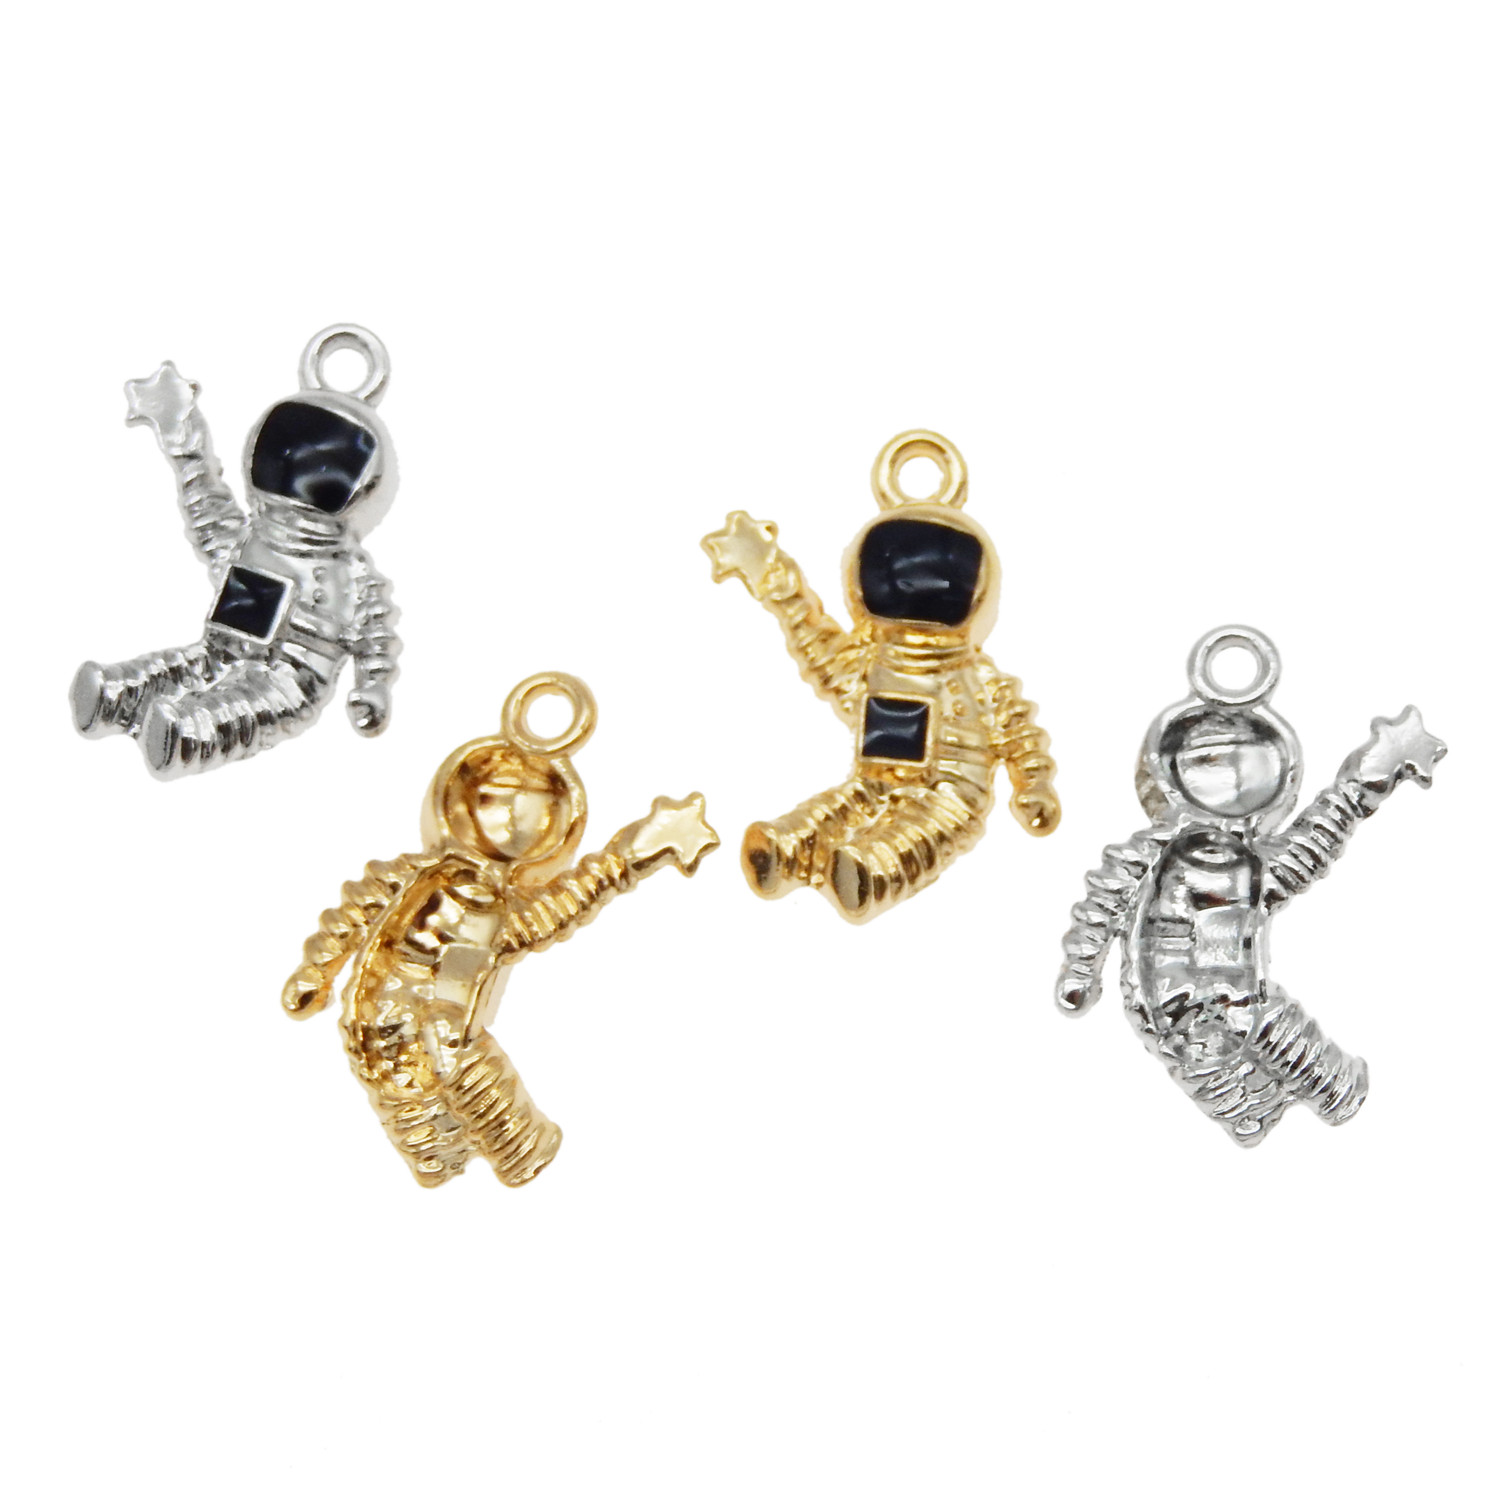 9PCS Enamel Plated Assorted Moon with Astronaut Charms Pendant Jewelry Findings